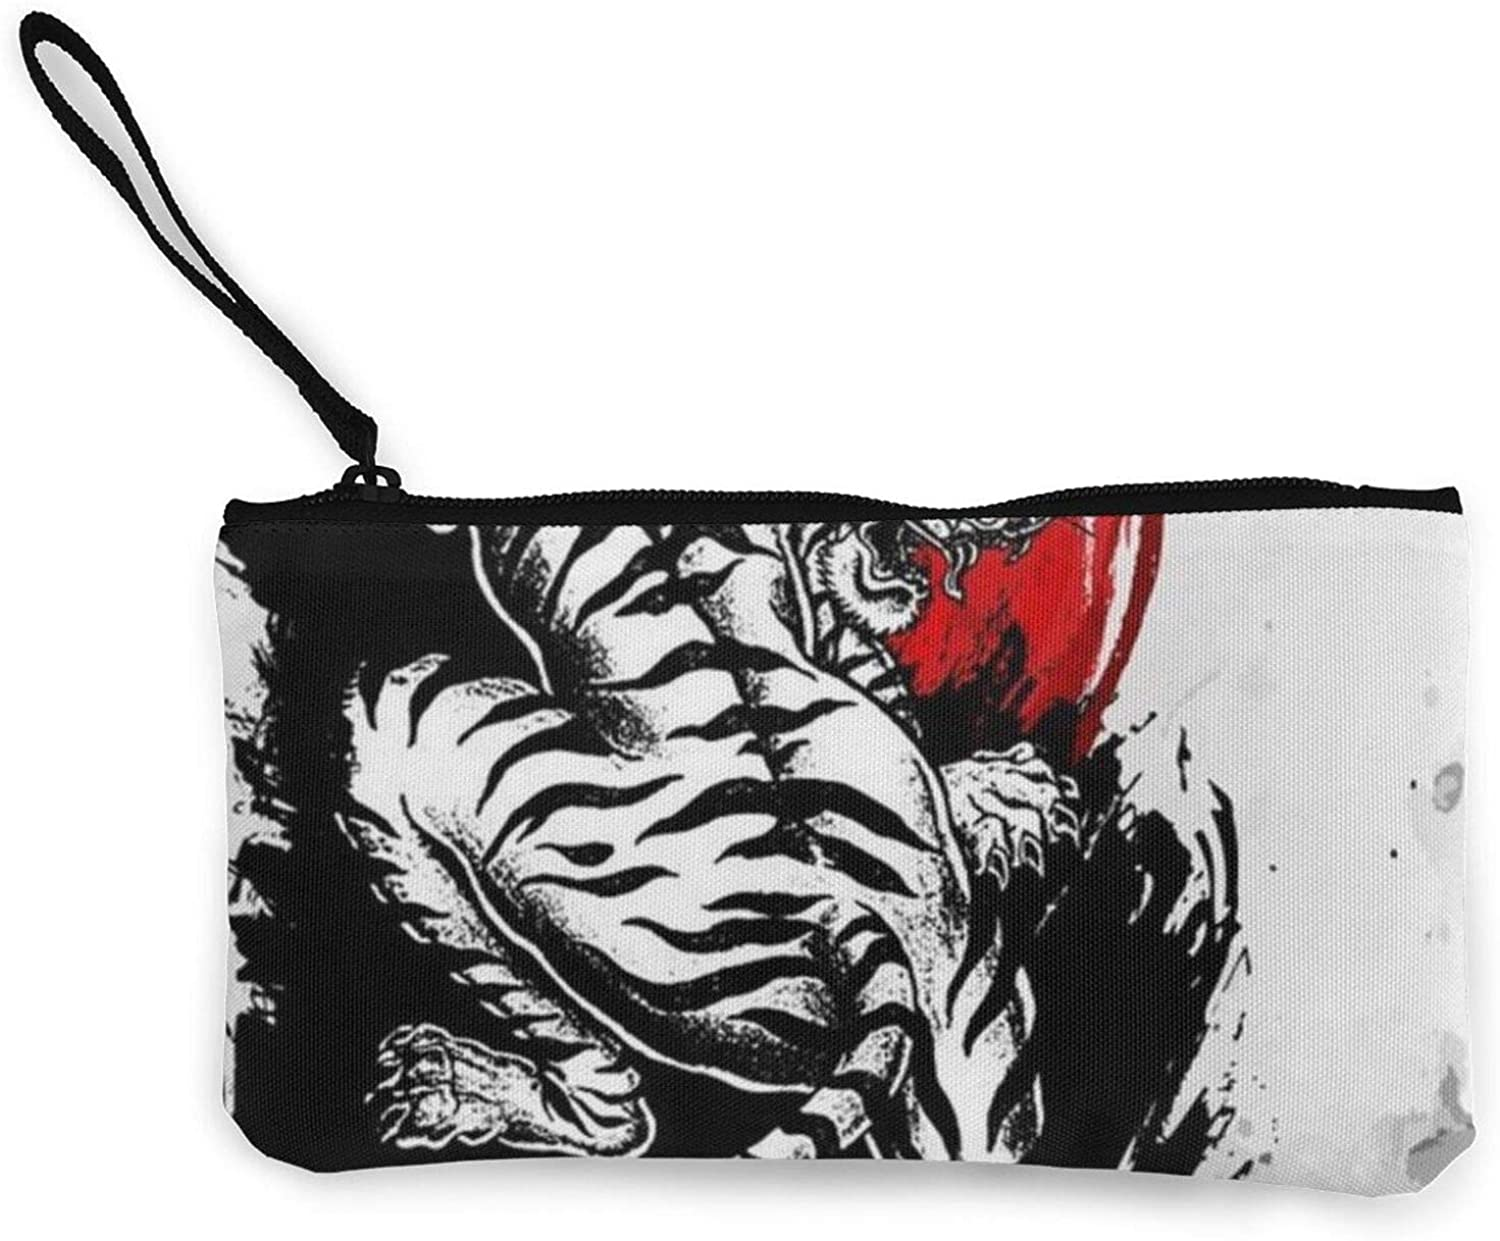 Women Girls Canvas Change Coin Purse with Wrist Strap Small Make Up Bag